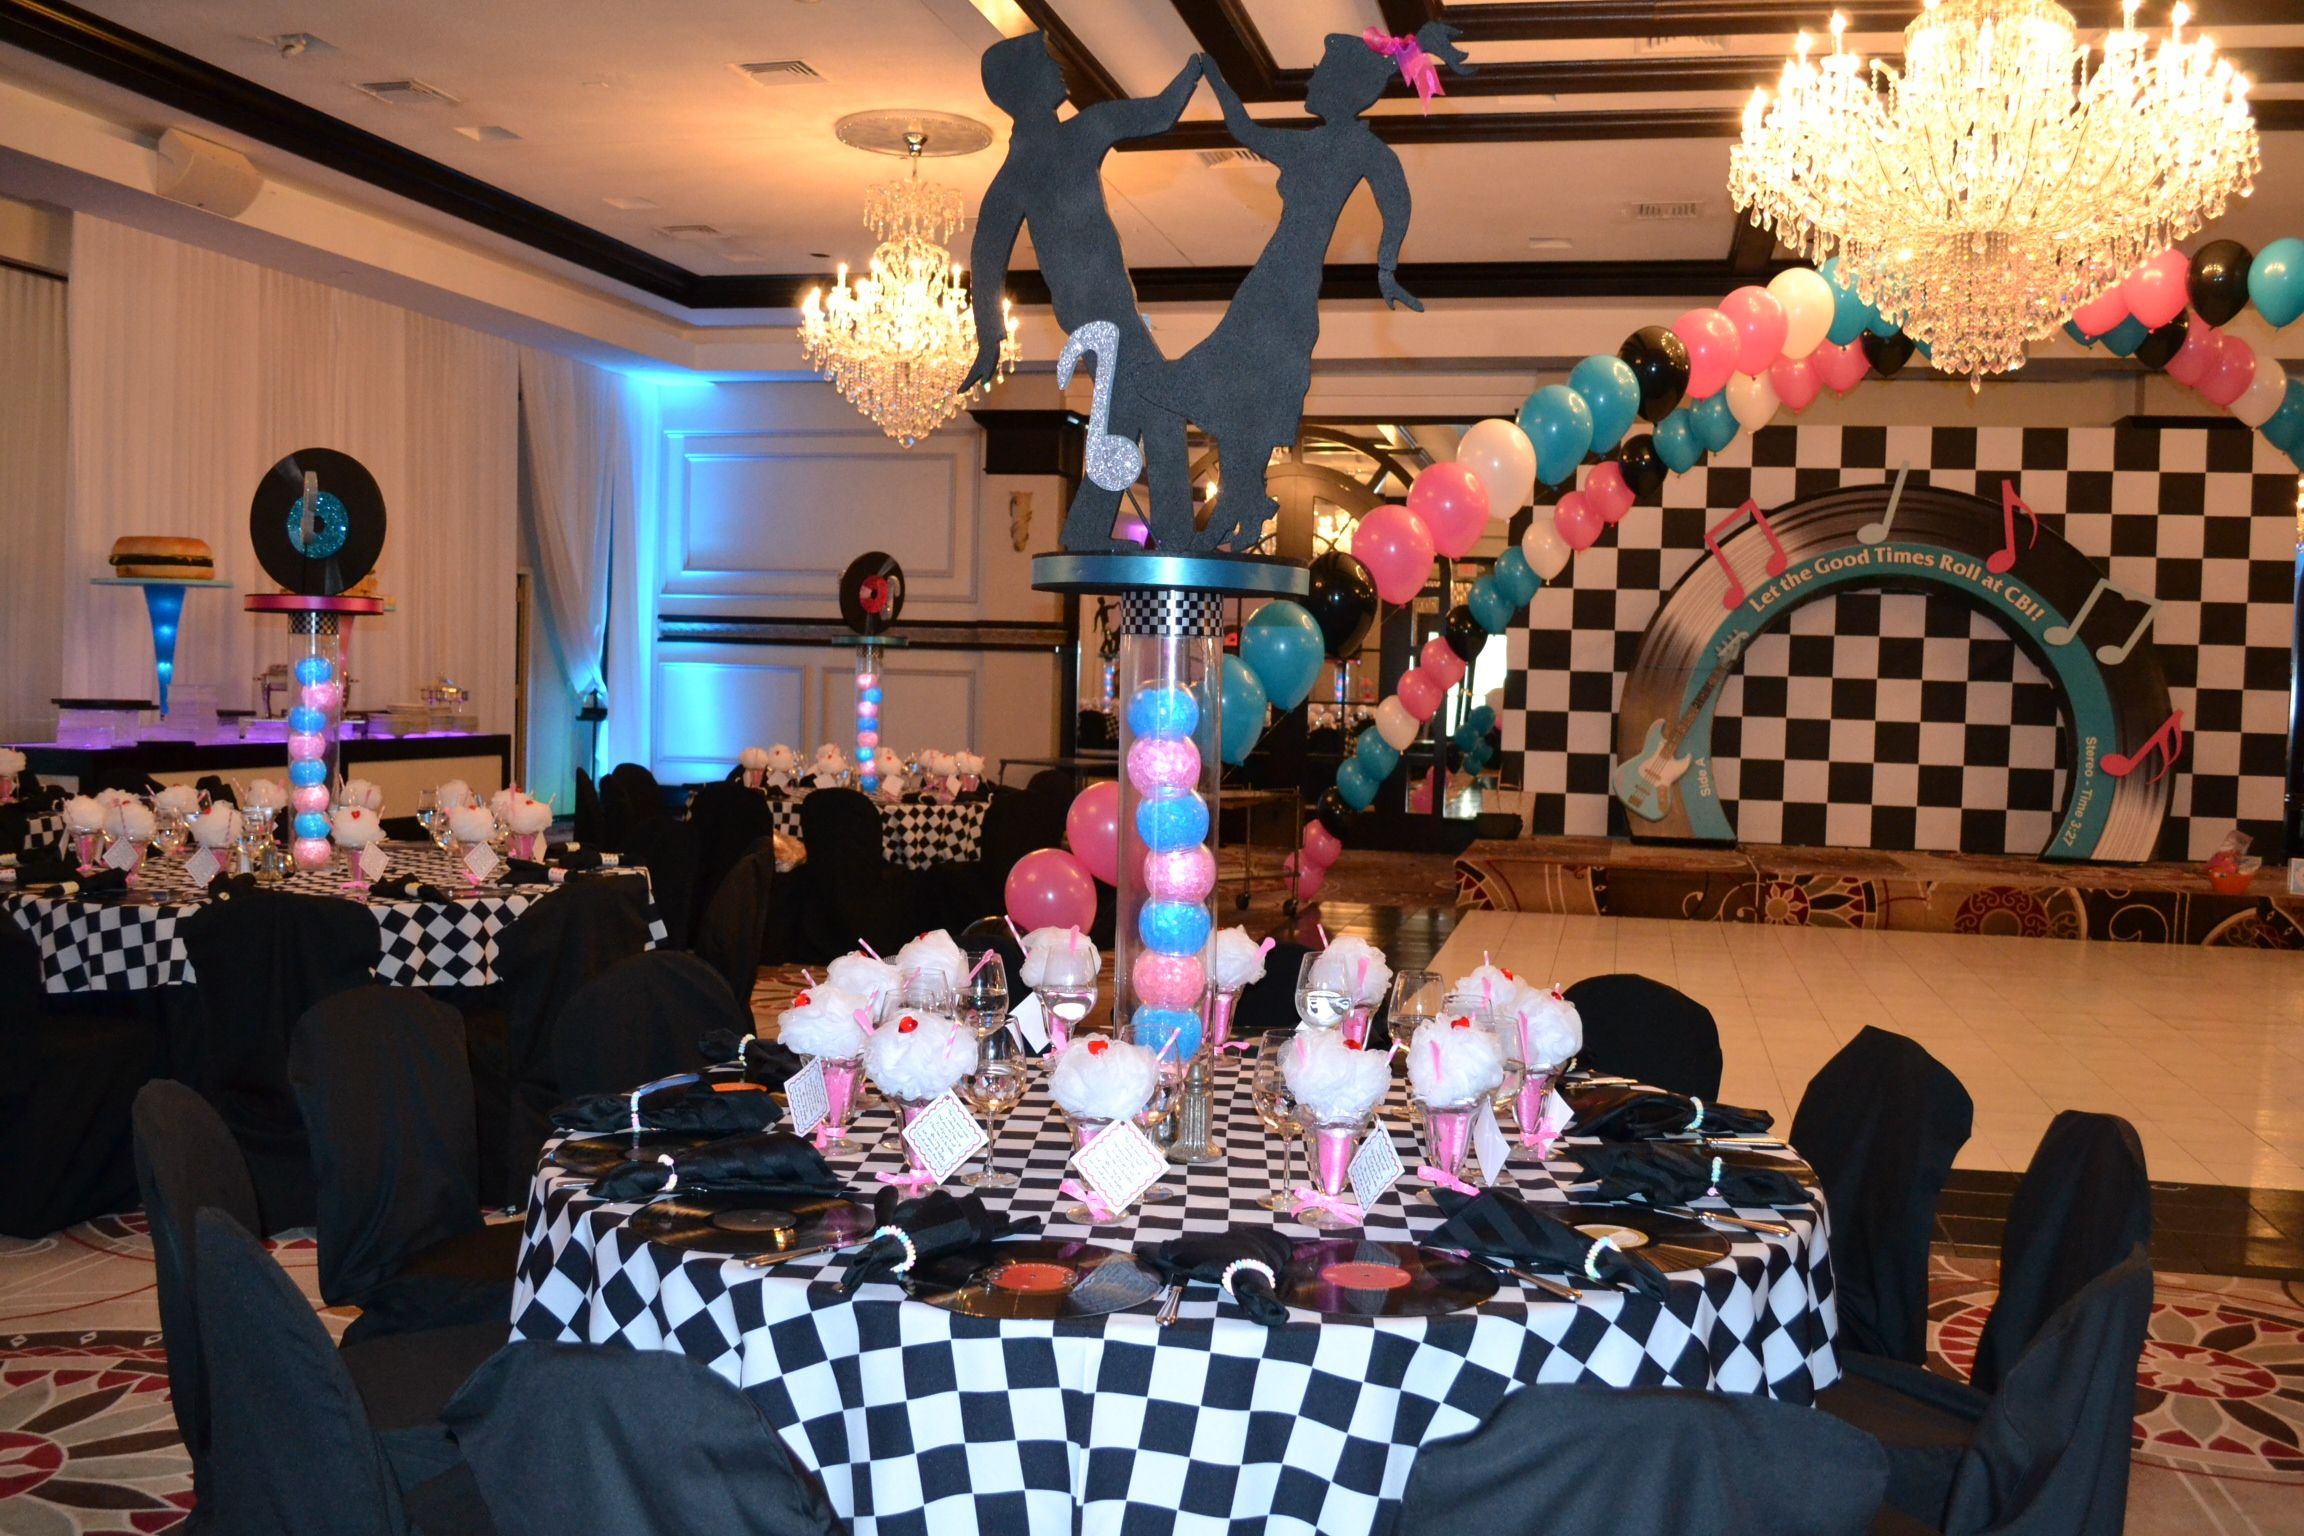 50 S Themed Event Decor Party Perfect Boca Raton Fl 1 561 994